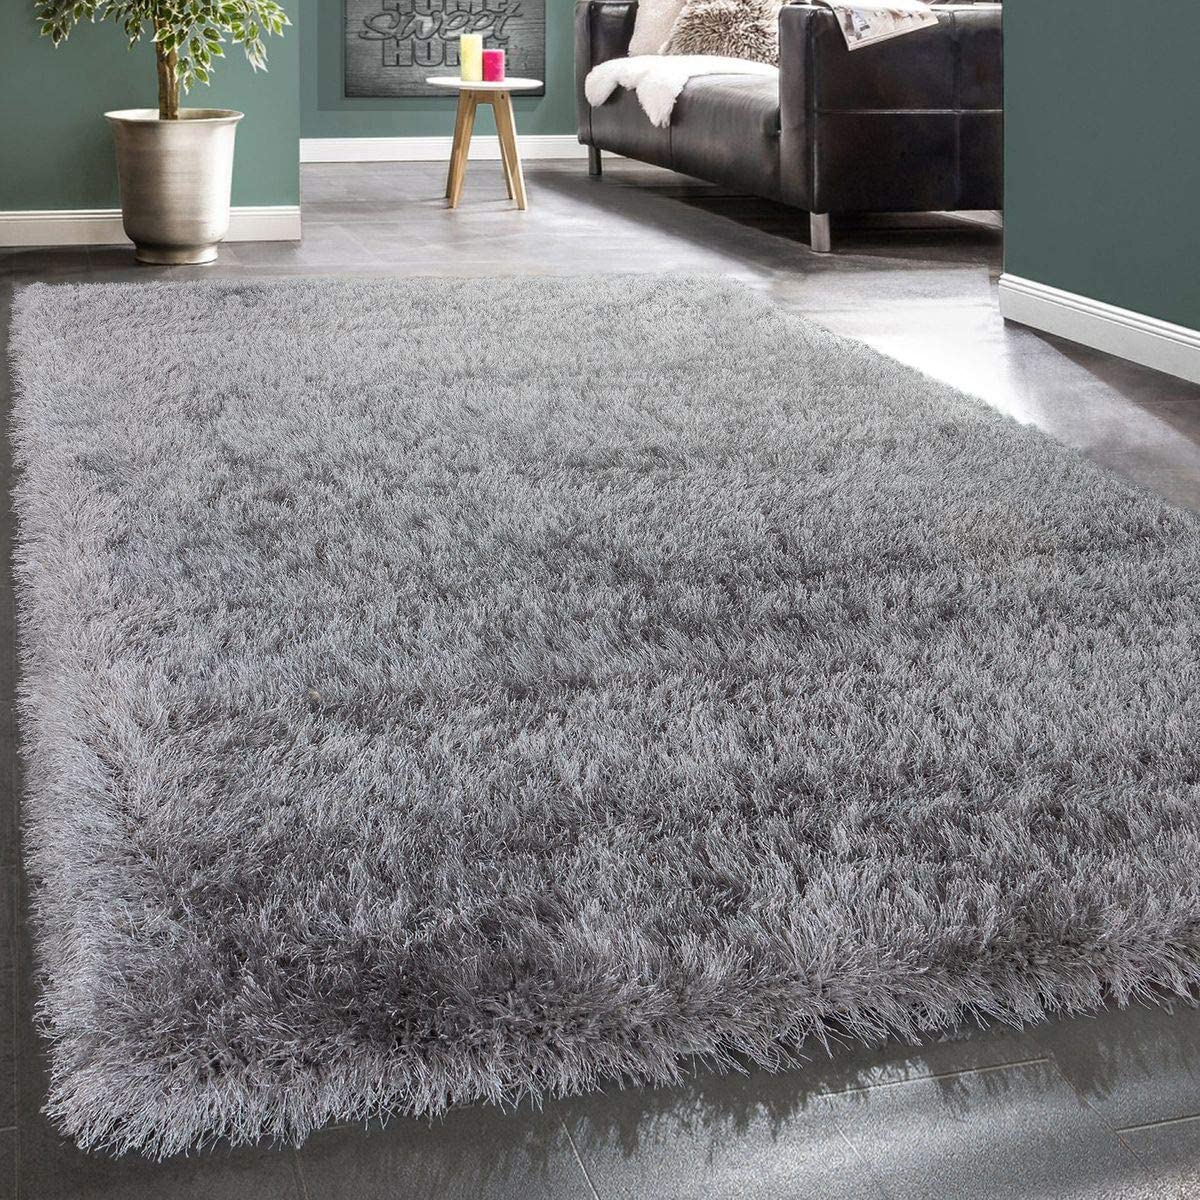 Paco Home Shag Rug High Pile Bedroom Living Room Fluffy Glossy Pastel Yarn, Size 6 7 x 9 6 , Colour Grey